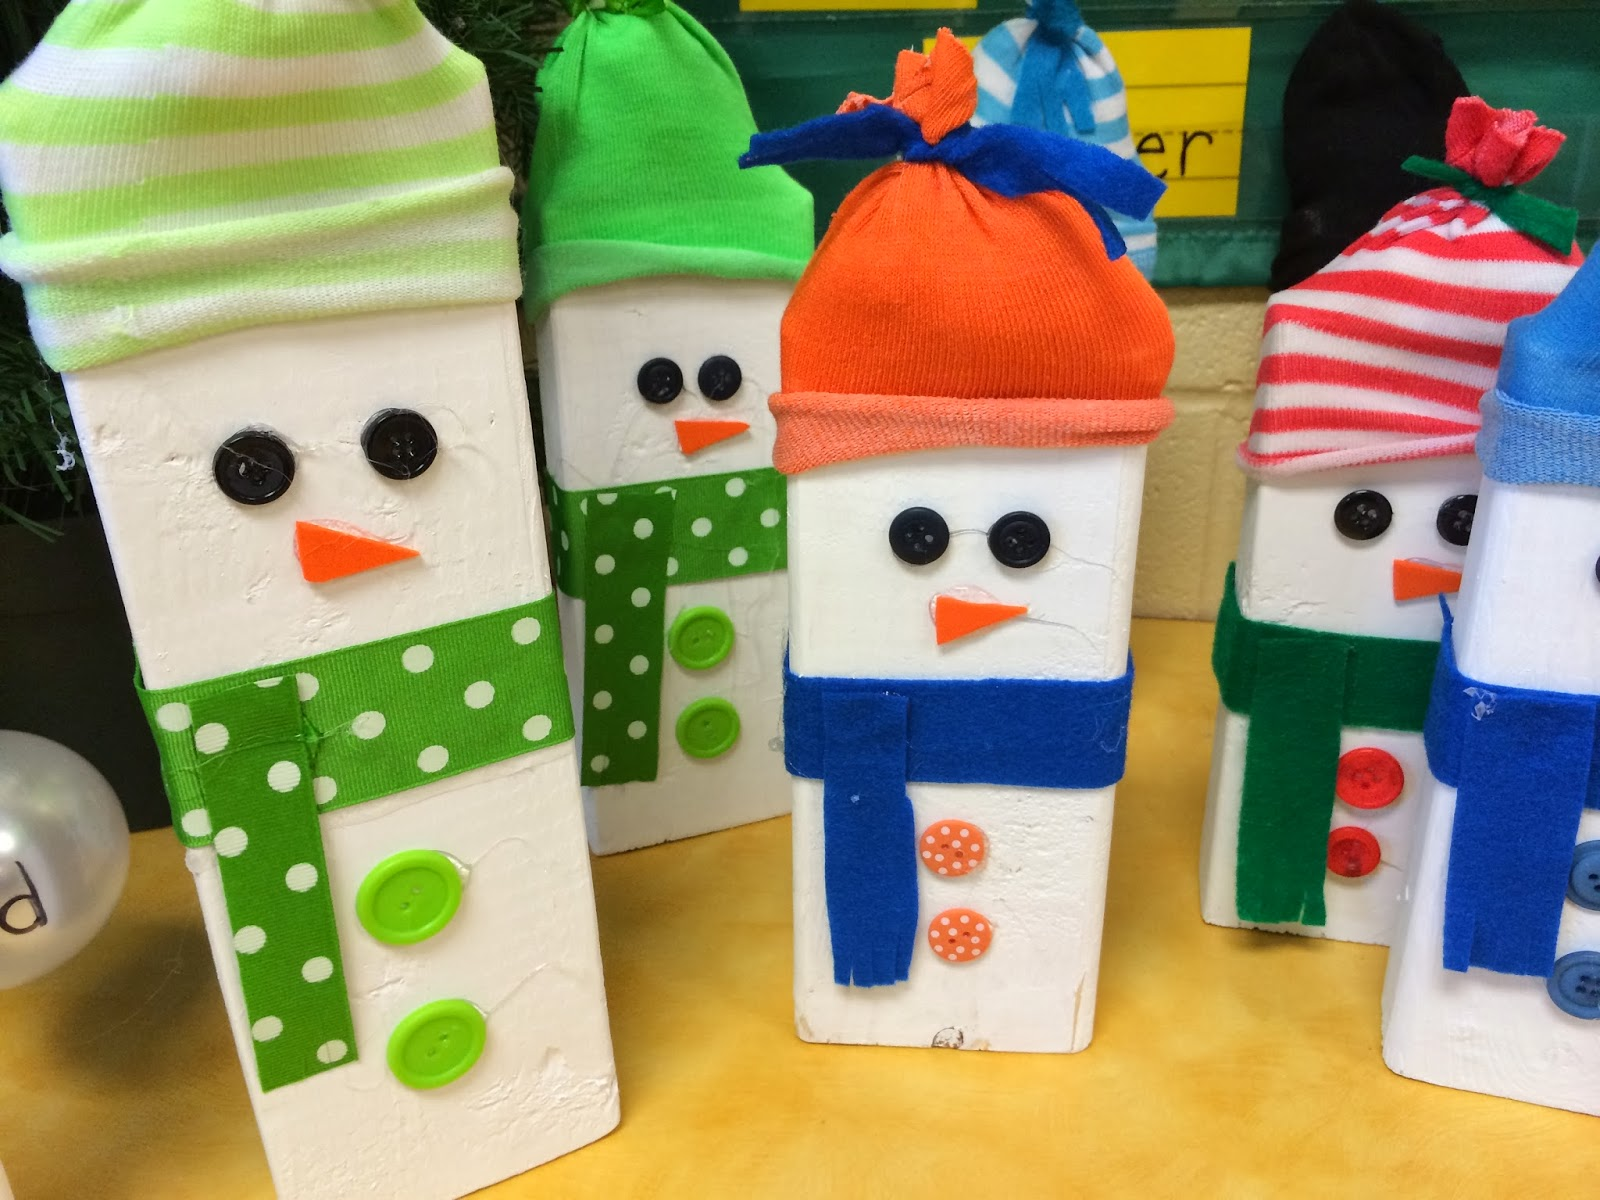 Christmas art activities for first graders 1000 images for 3rd grade christmas craft ideas